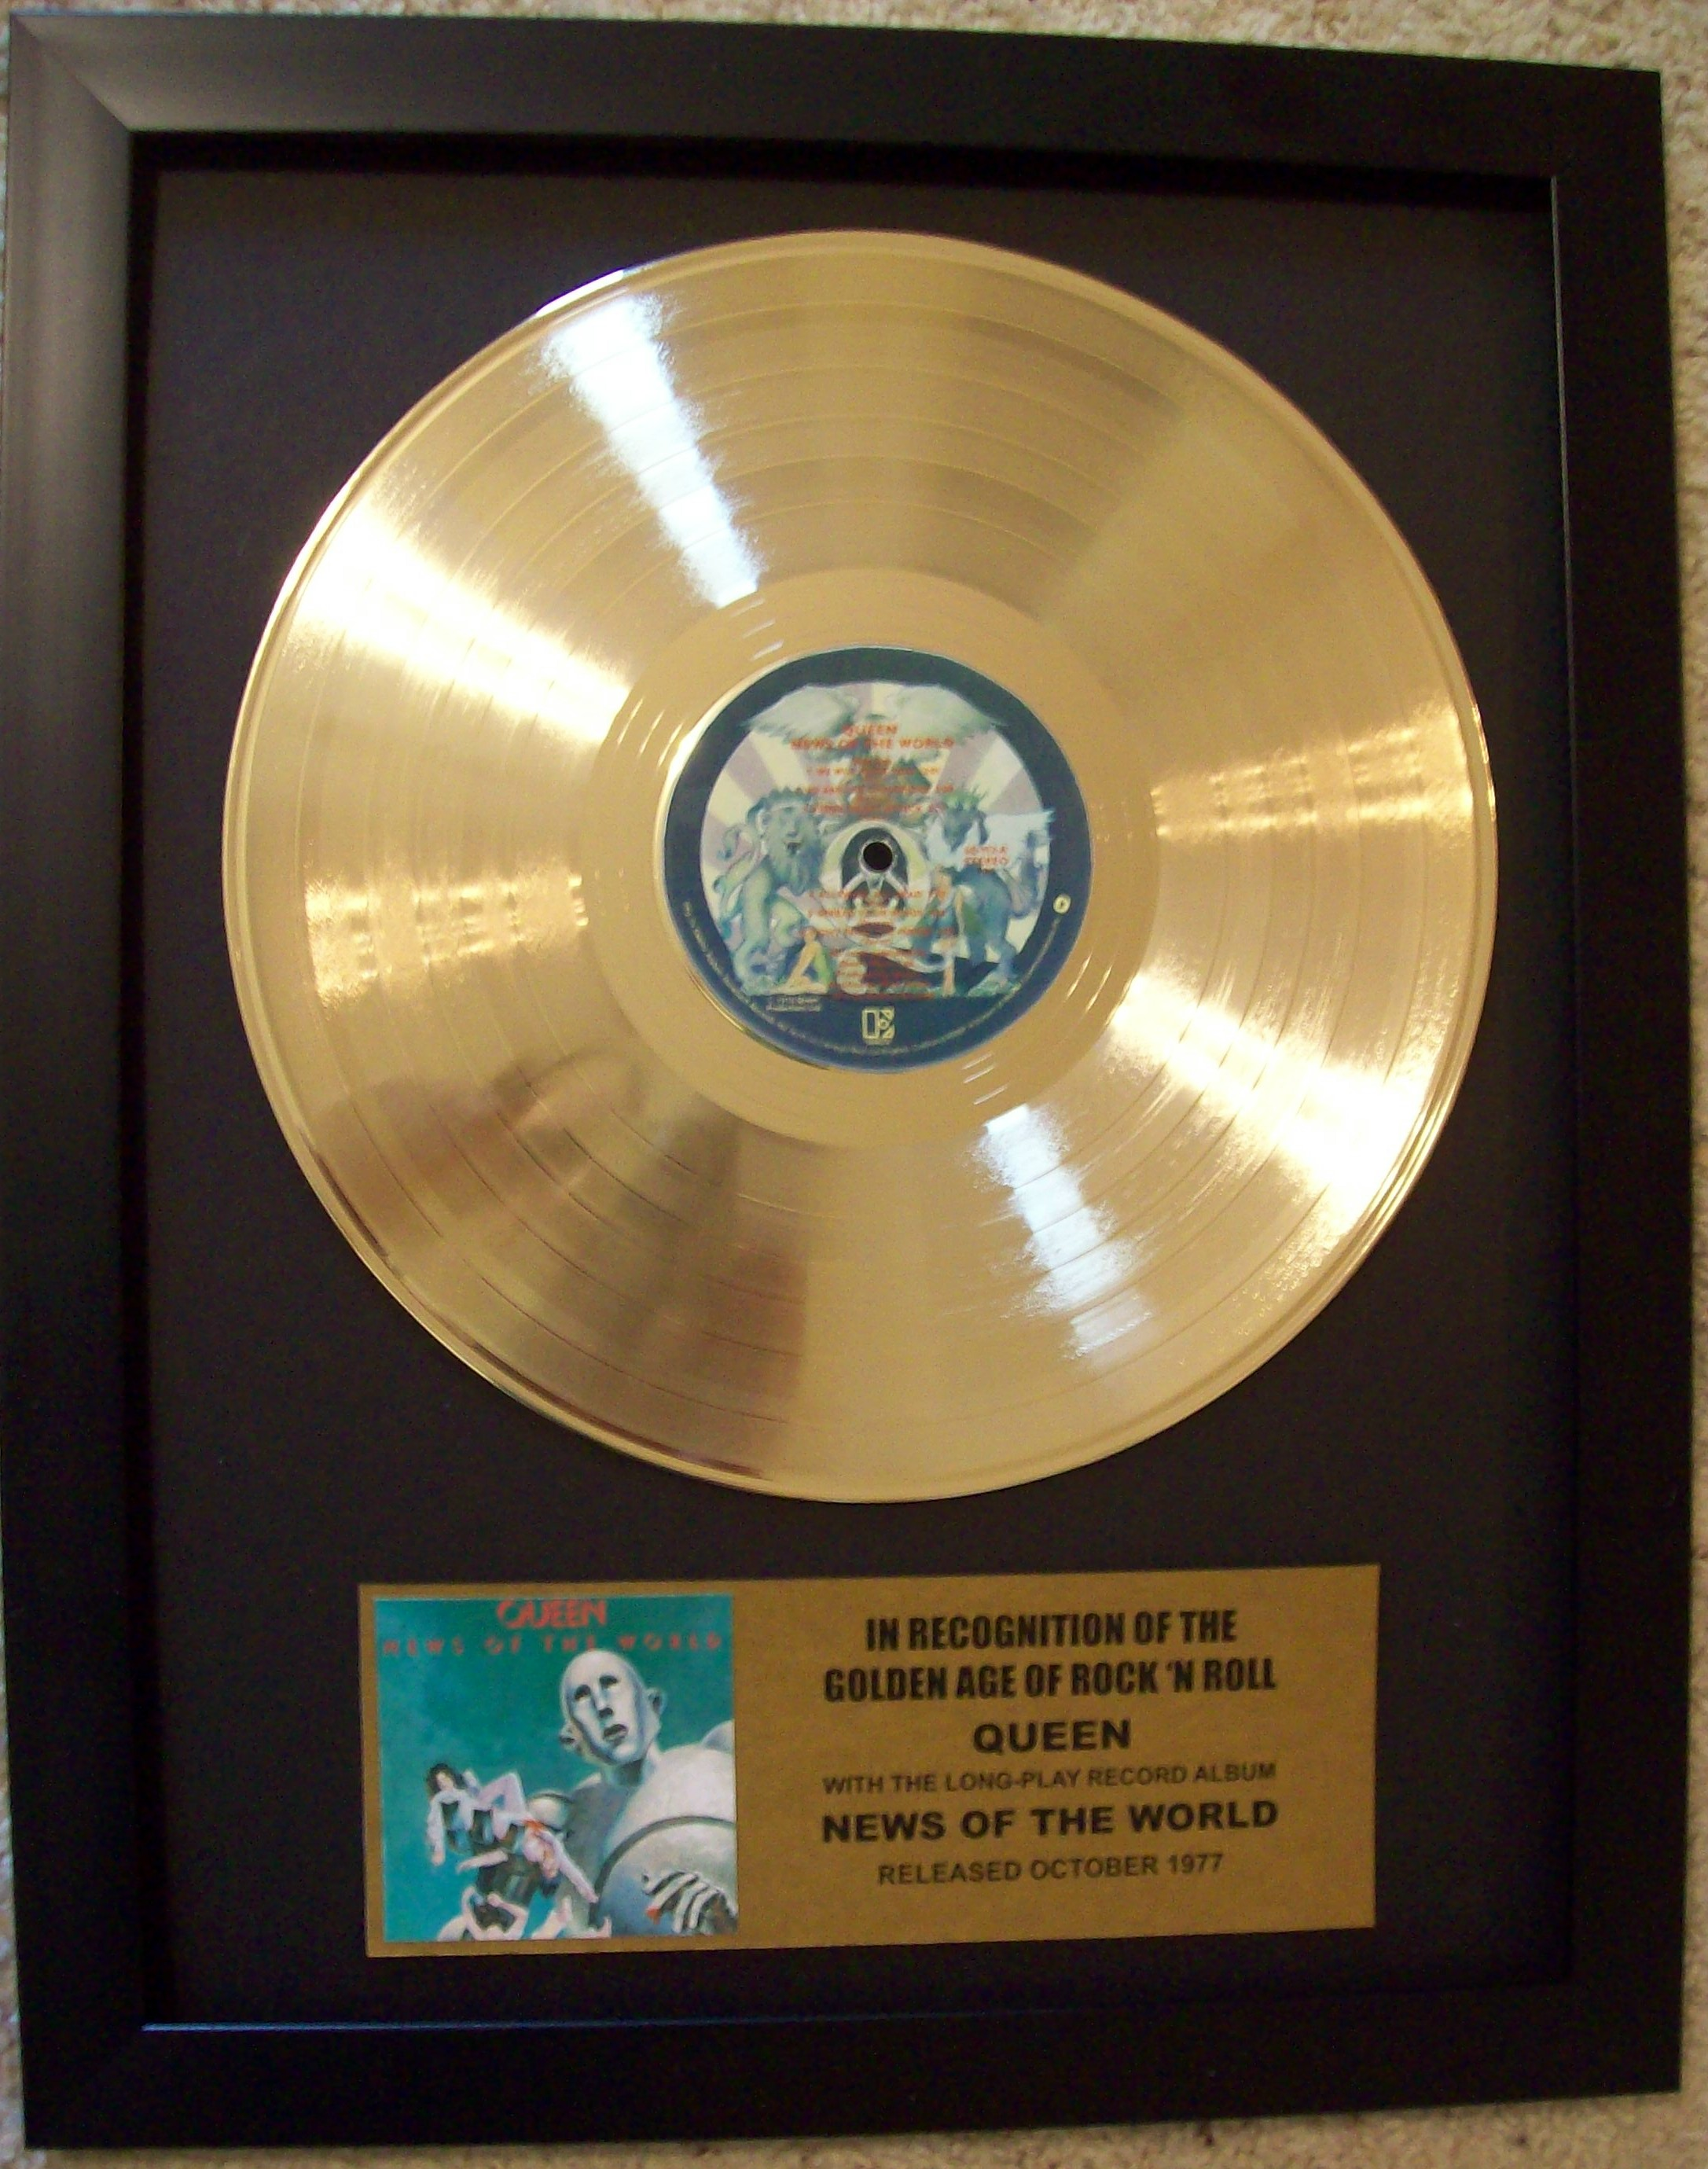 Image for Queen News Of The World Gold Record